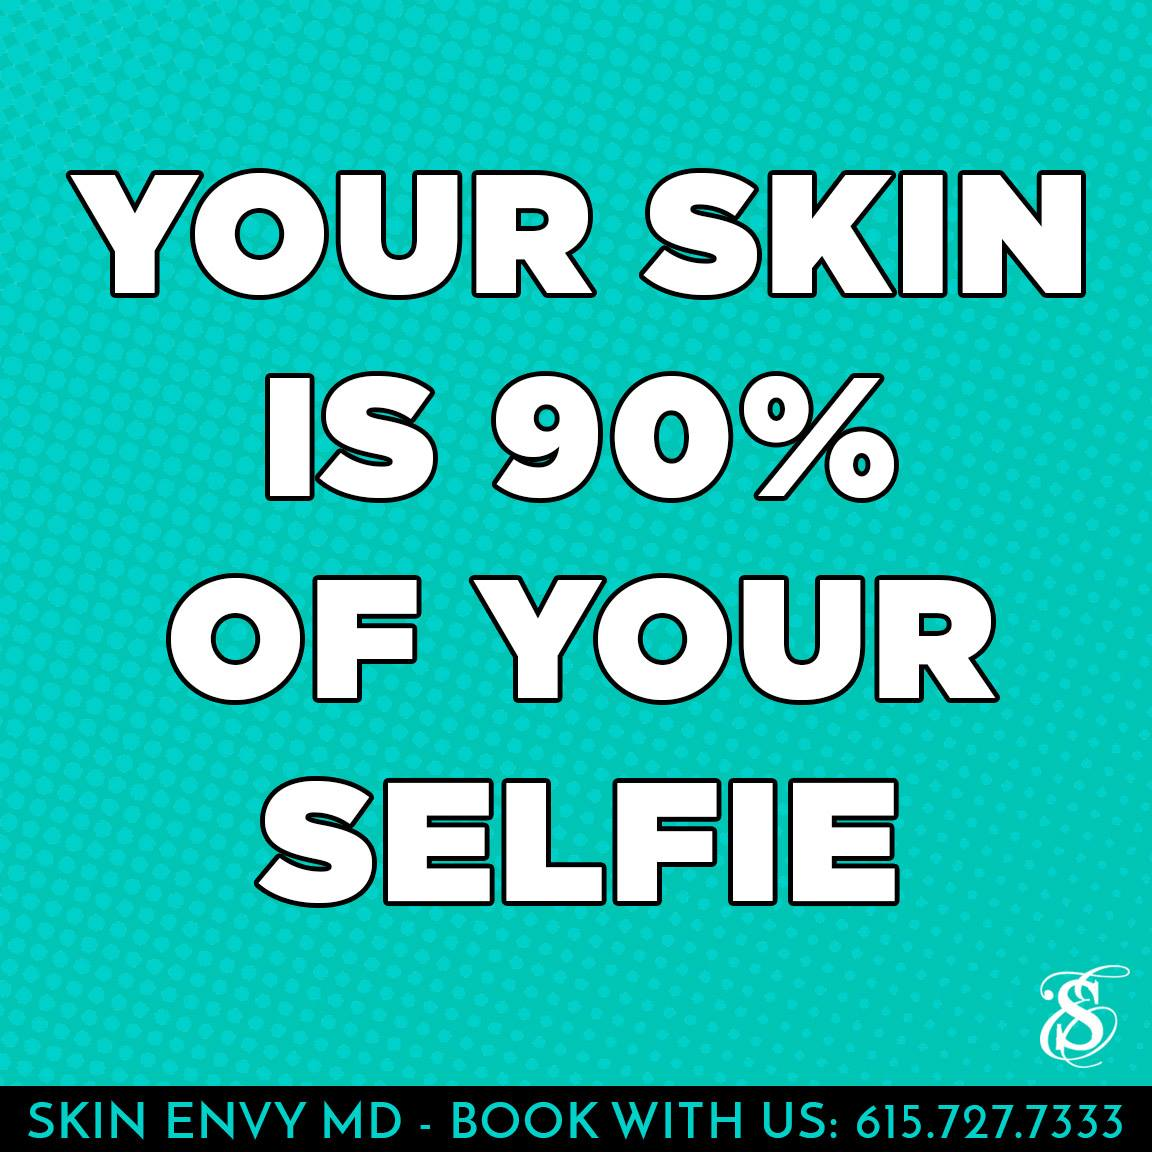 Selfie - by Skin Envy MD Nashville.jpg